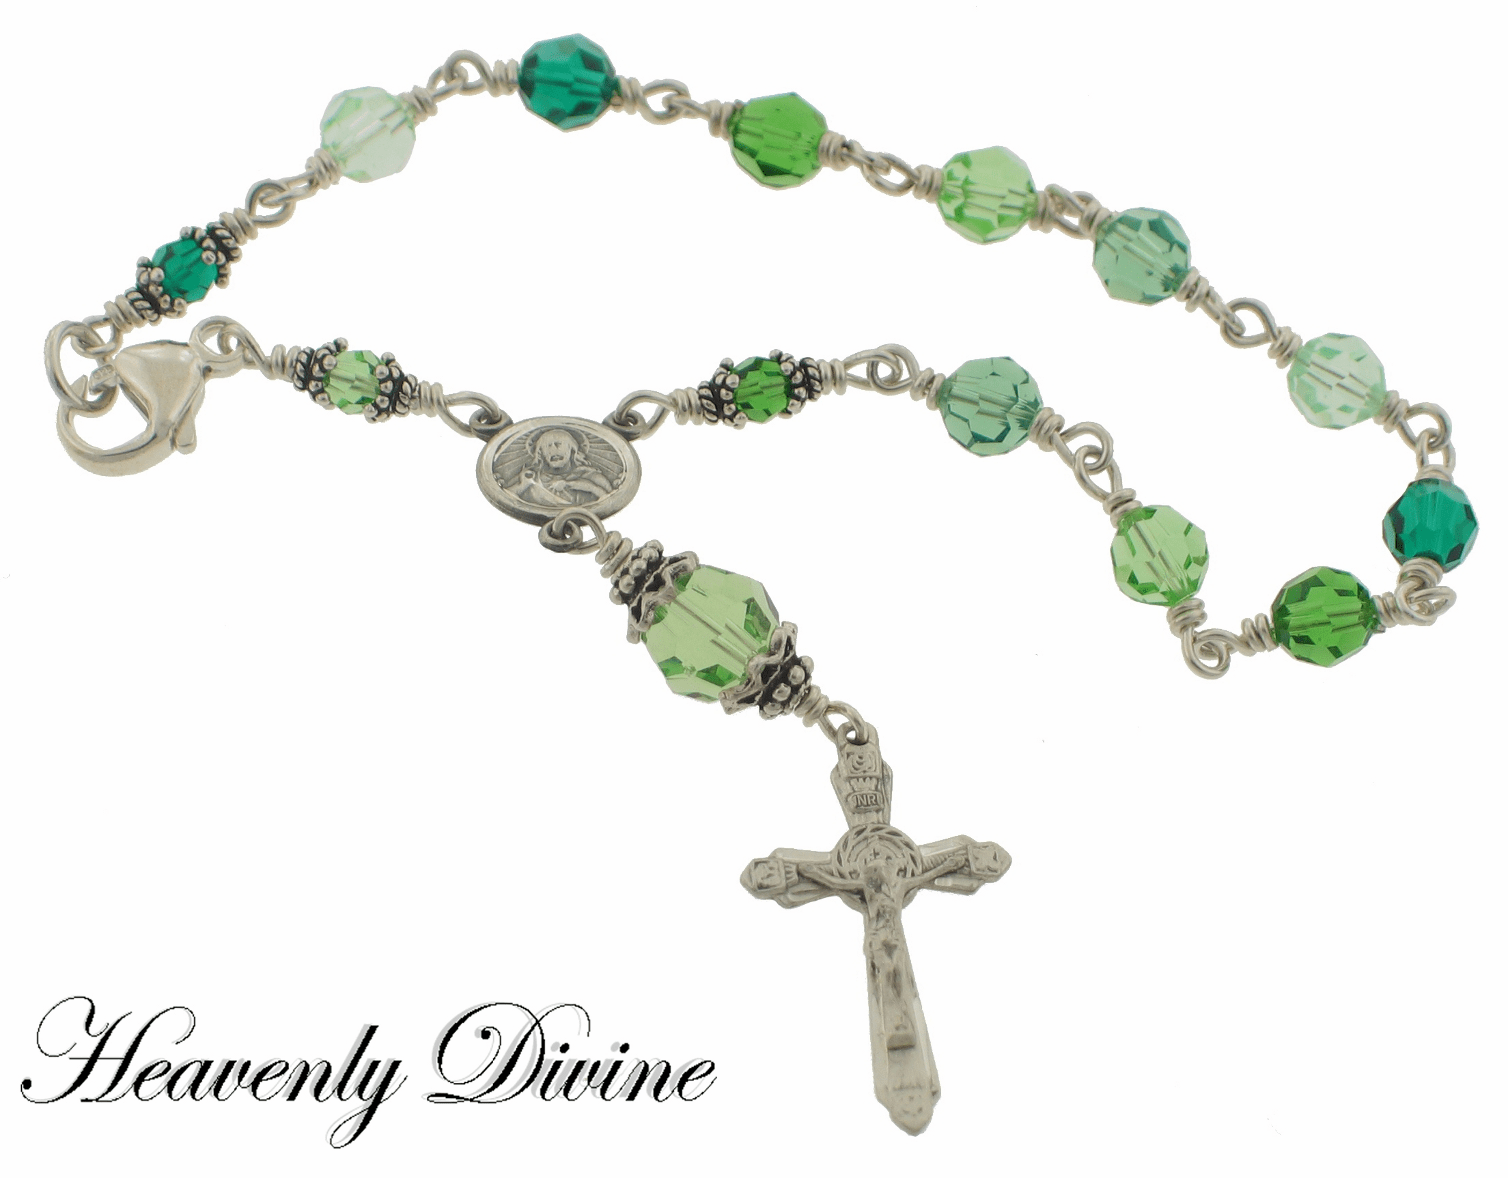 Green Swarovski Crystal Sterling Silver Rosary Bracelet by Heavenly Divine